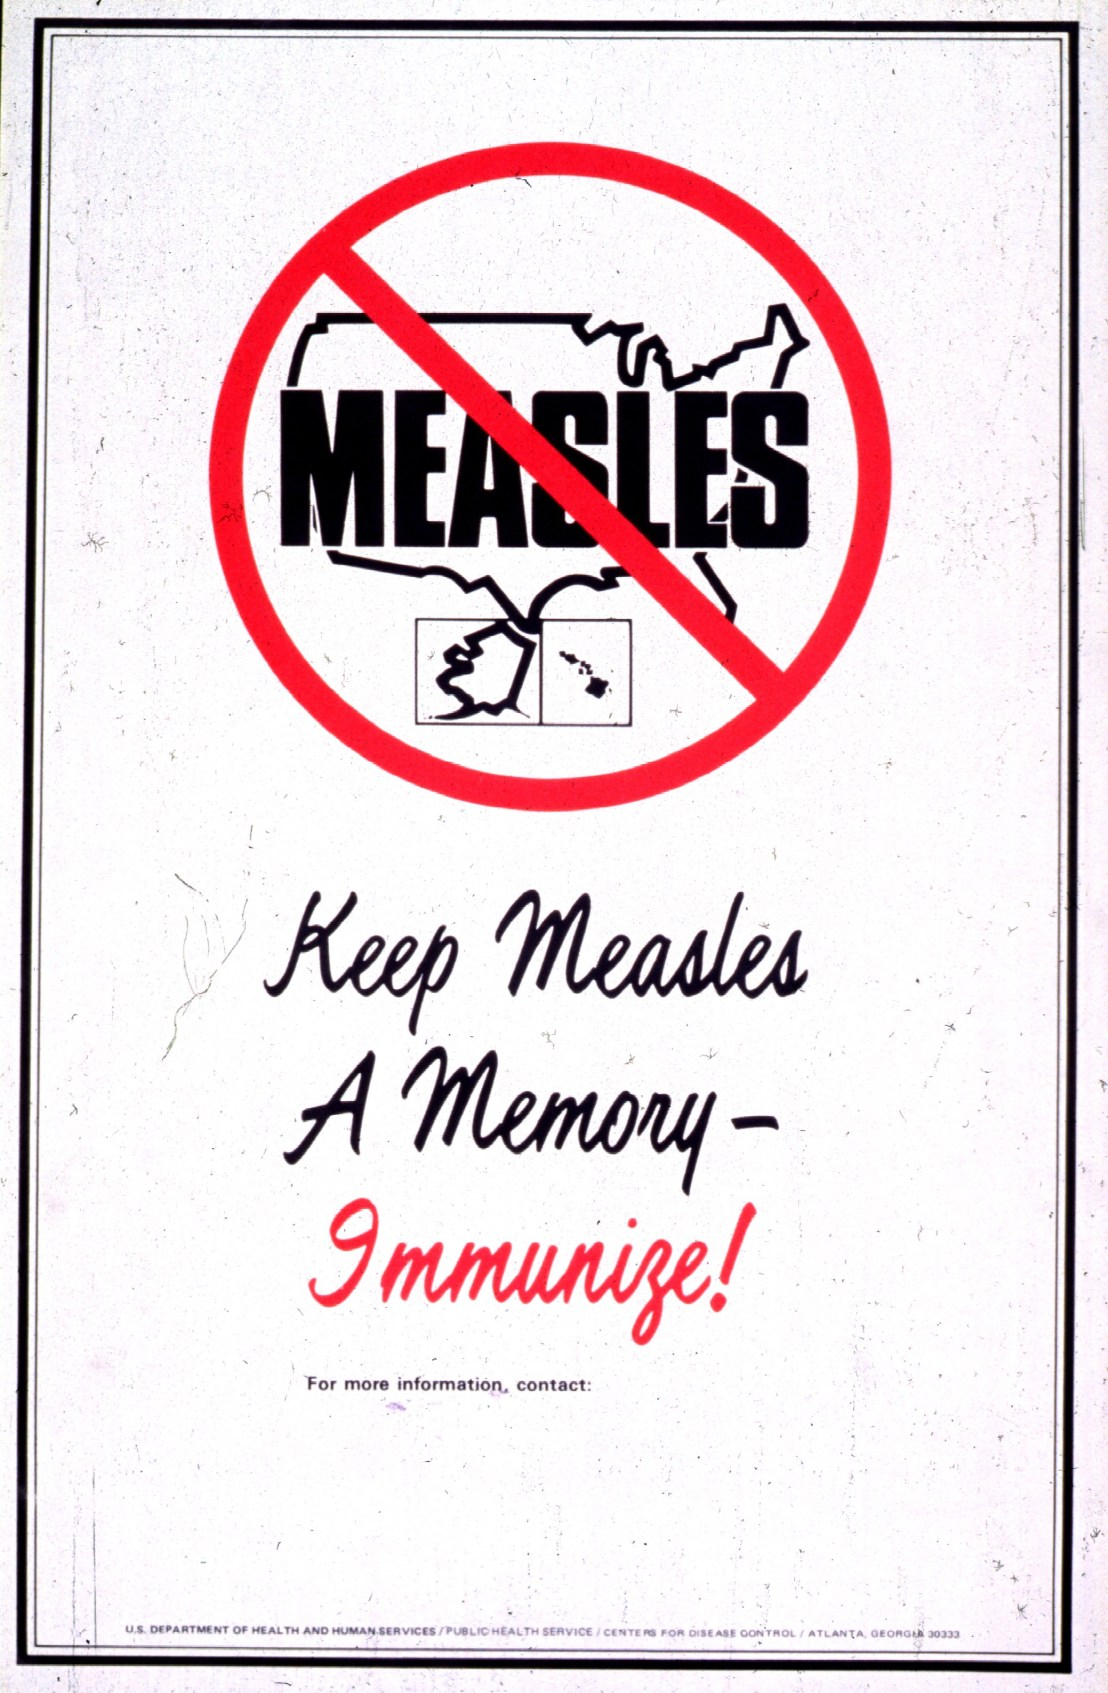 Keep Measles a Memory poster.